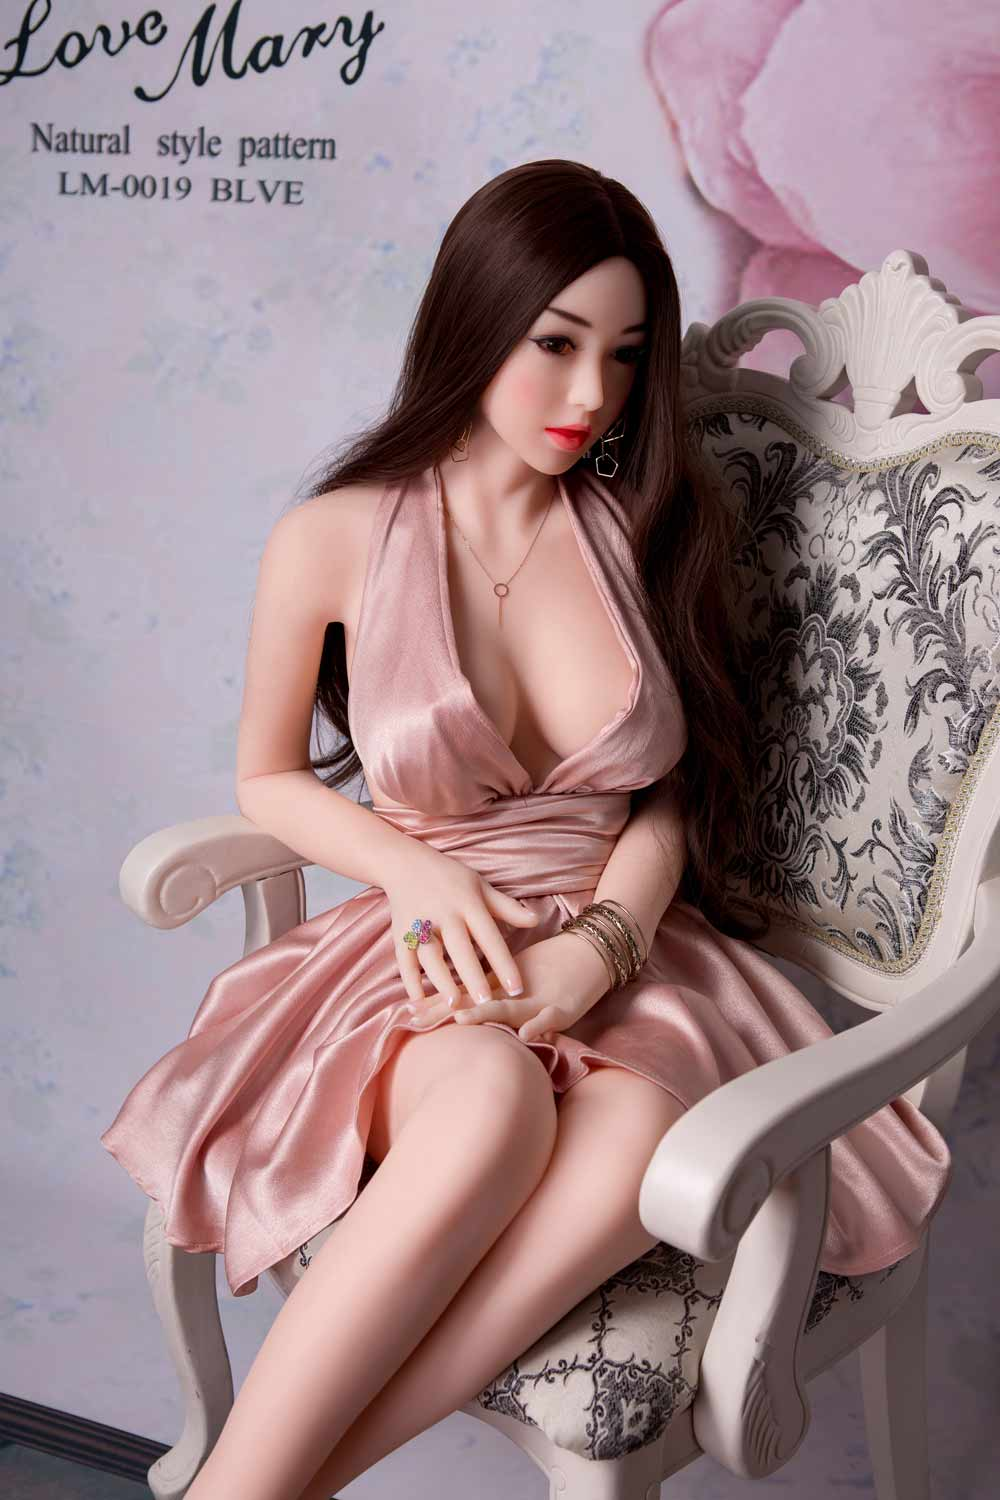 Sex doll with ring in hand